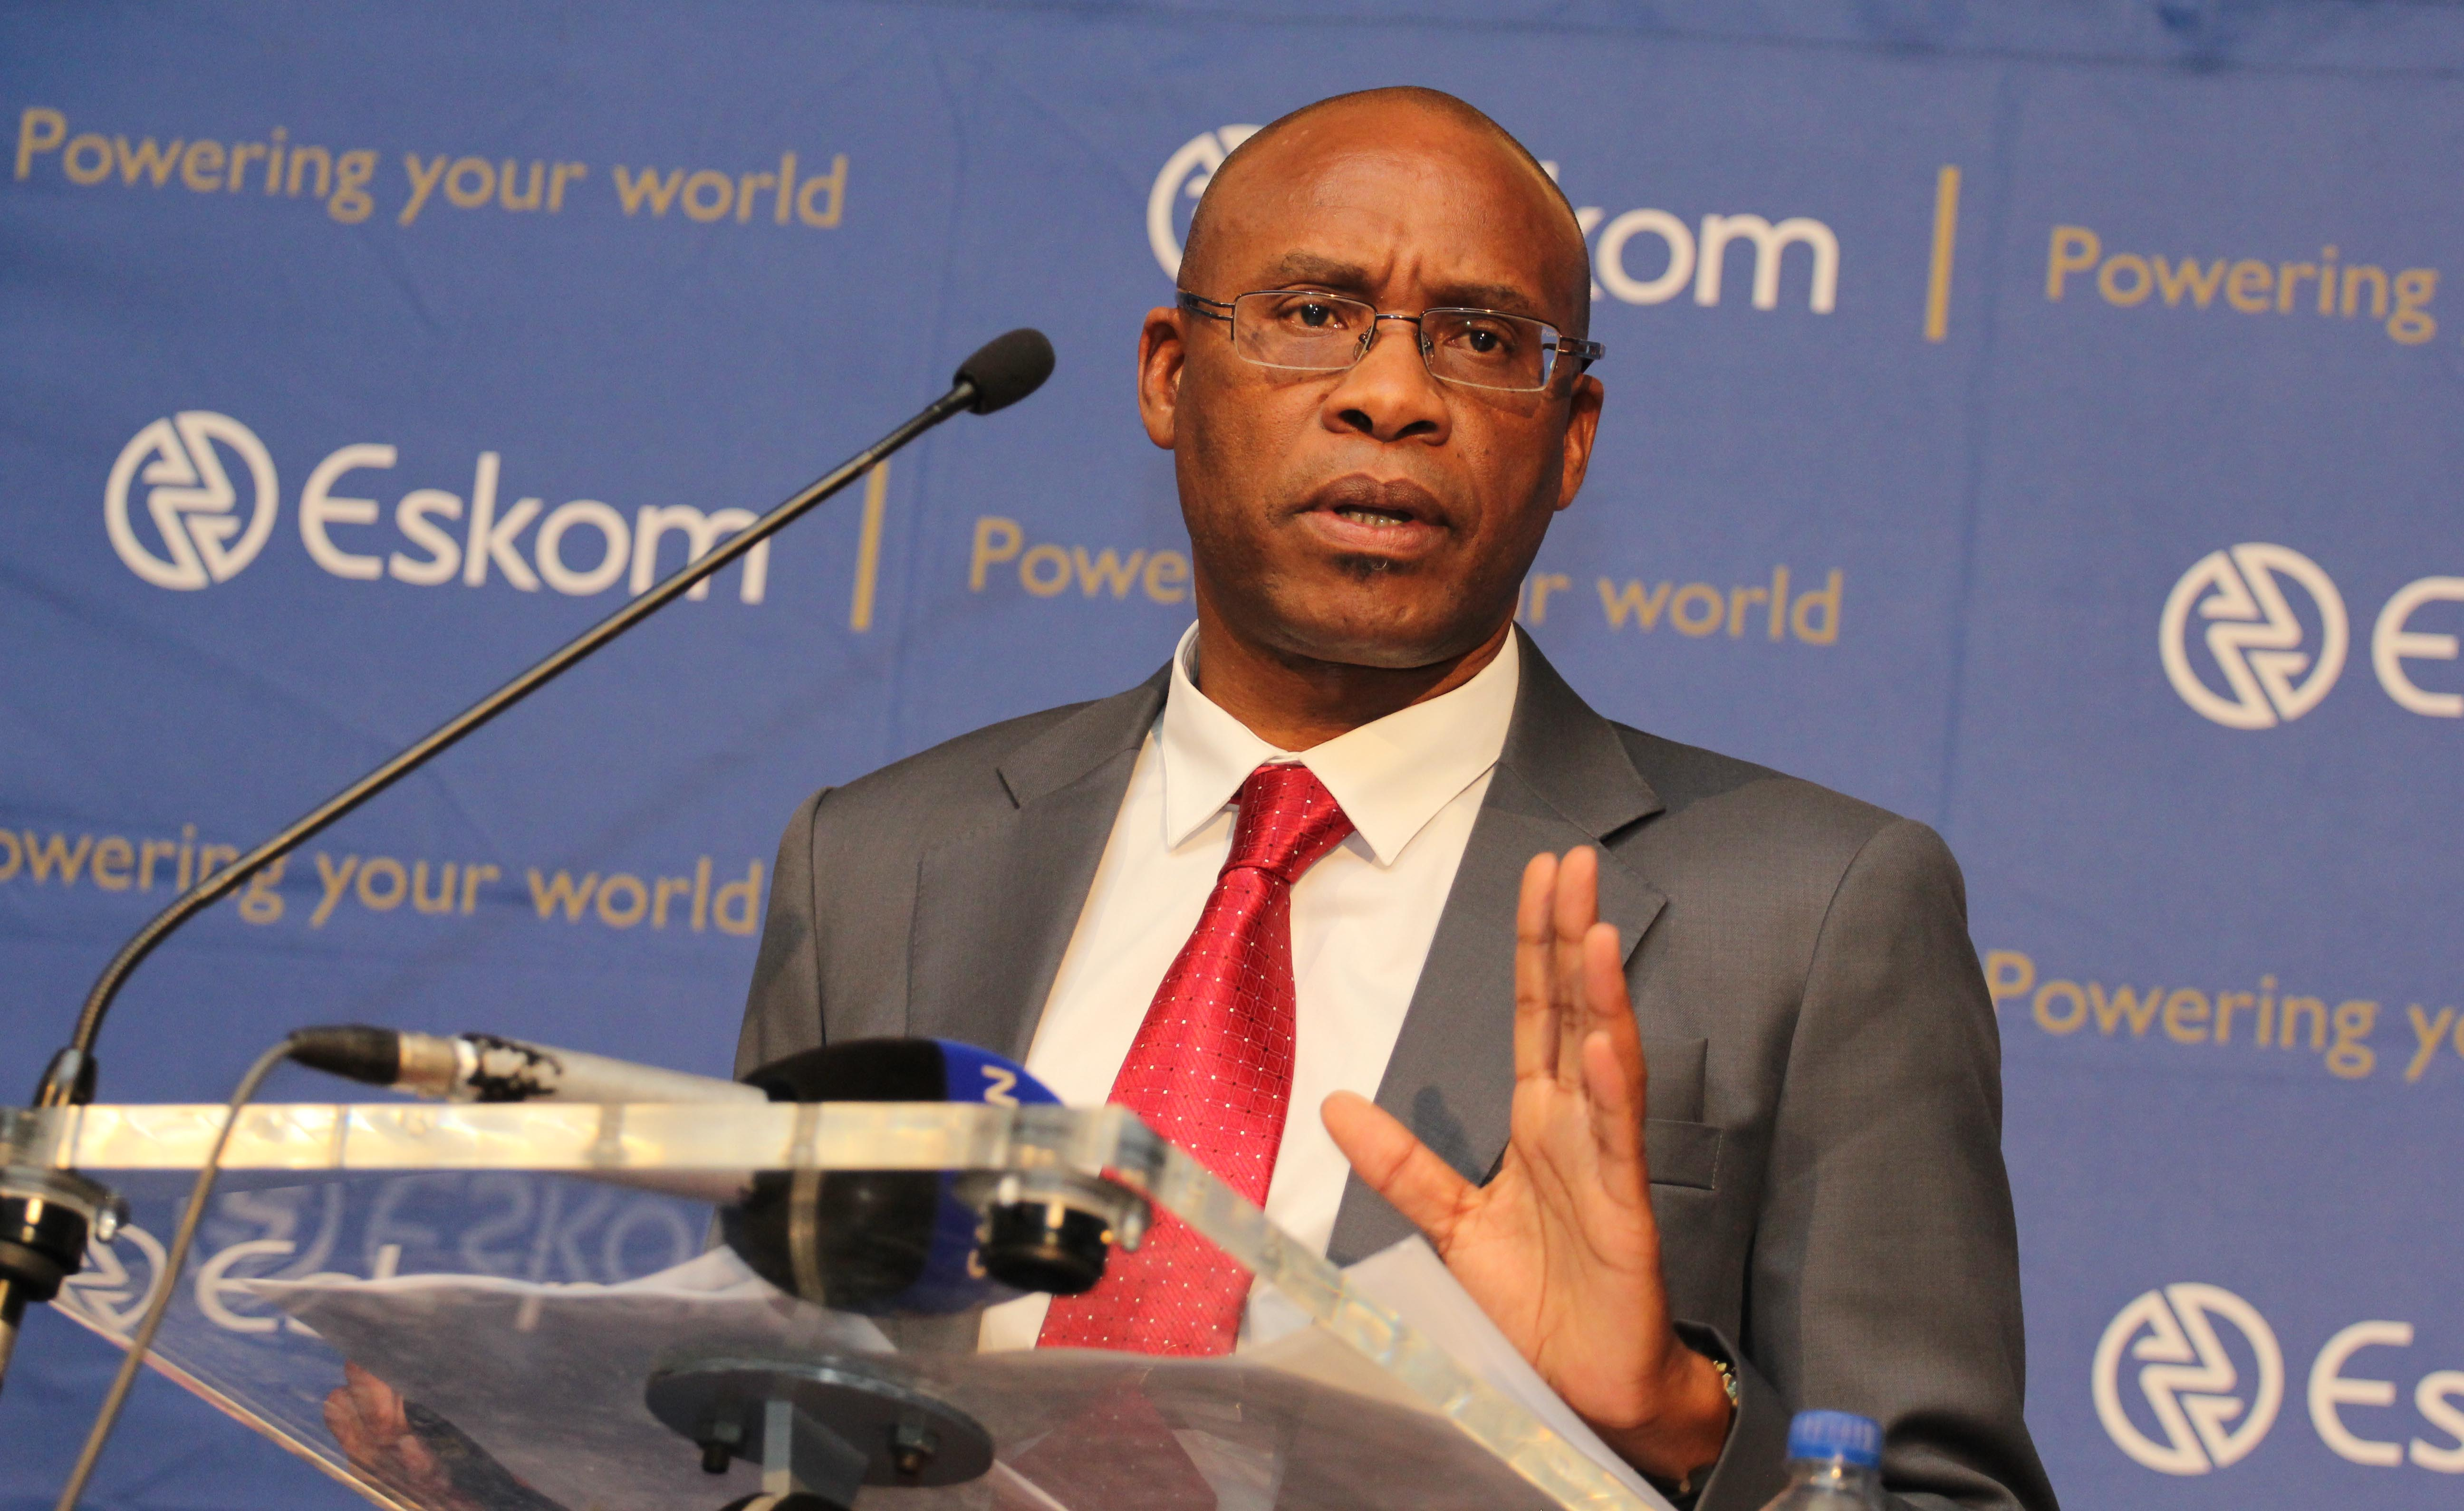 Sources say senior ANC officials opposed Eskom CEO Suspension